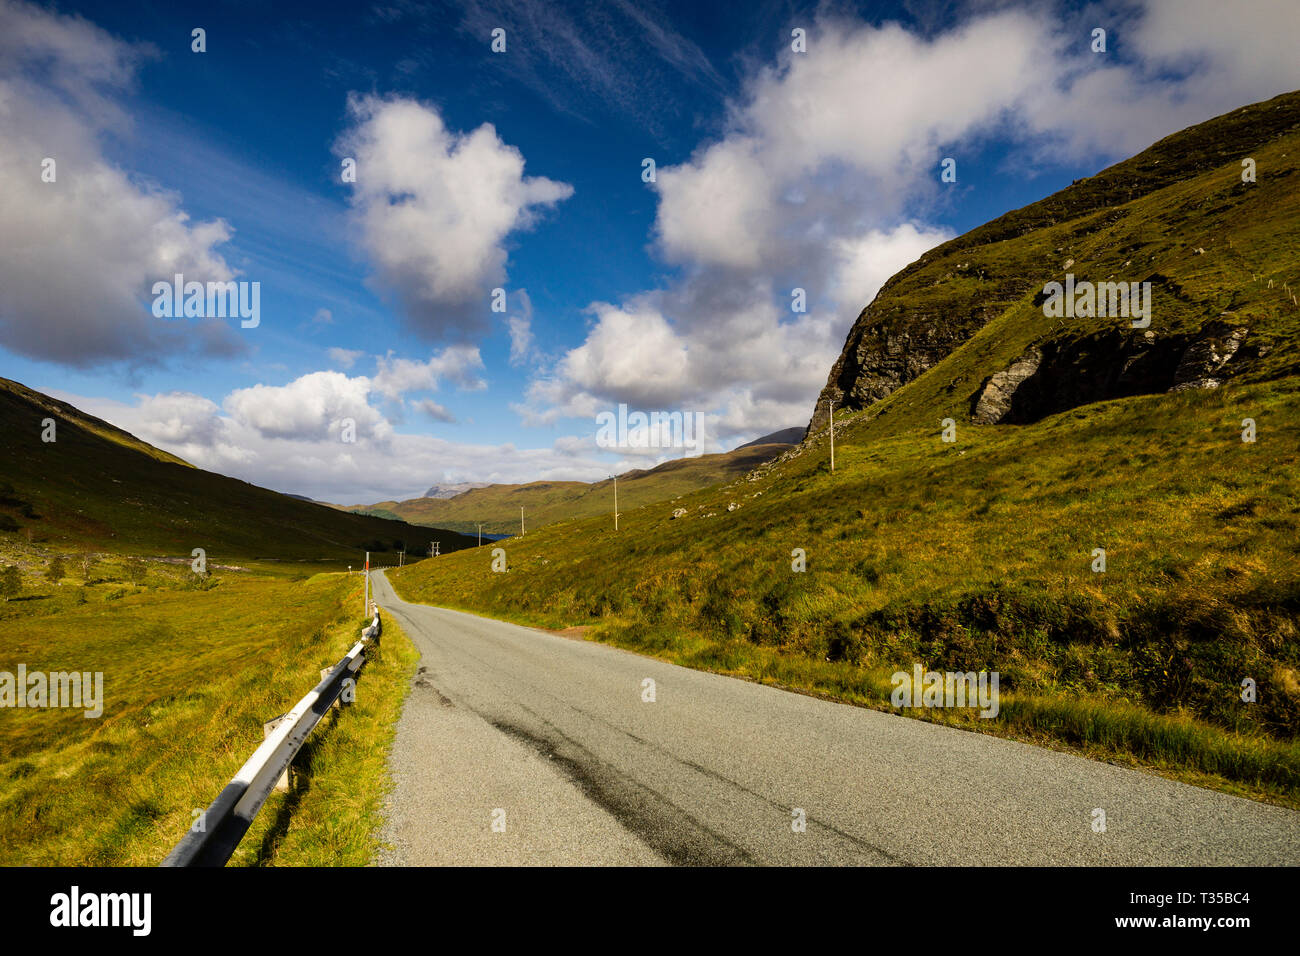 A single track road approaches Loch More on a sunny day in the Scottish Highlands. - Stock Image